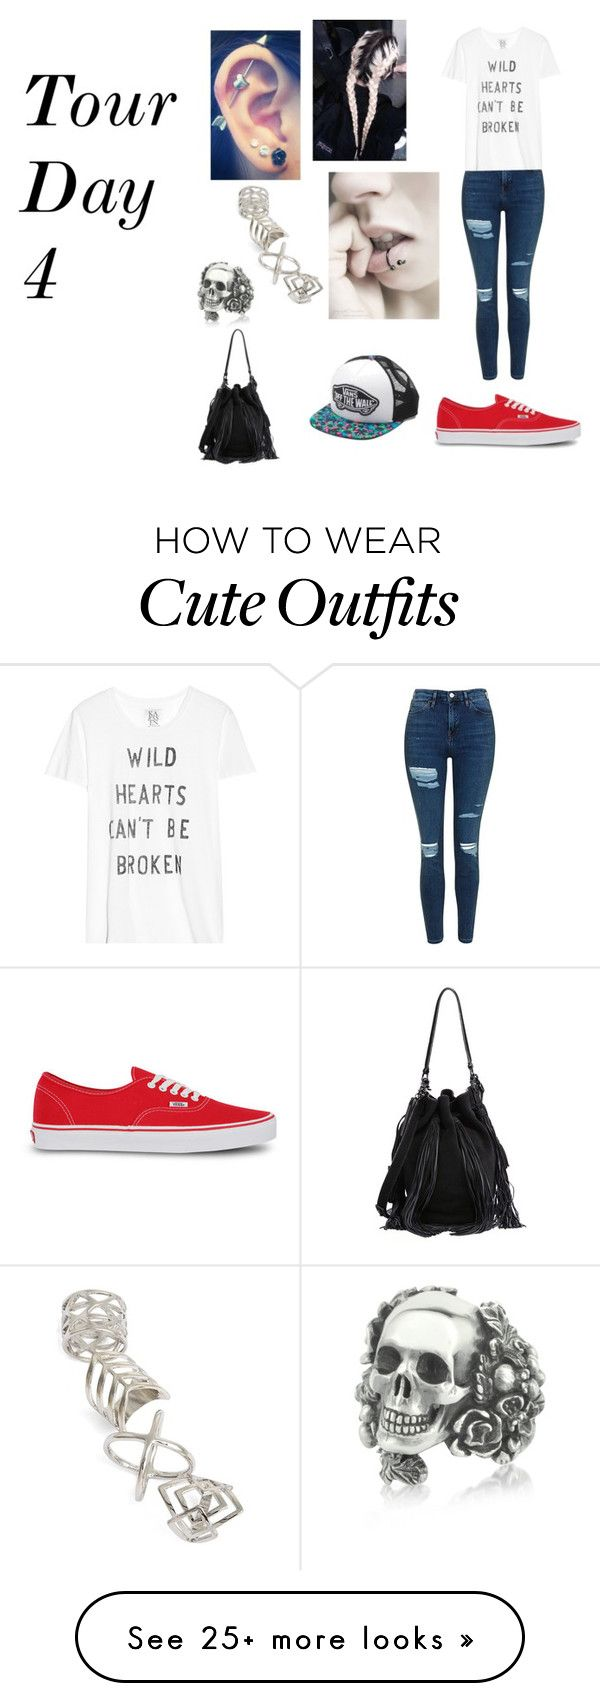 """Tour Day 4"" by tattoo-artsies on Polyvore featuring Topshop, Zoe Karssen, Vans, Ugo Cacciatori and Loeffler Randall"